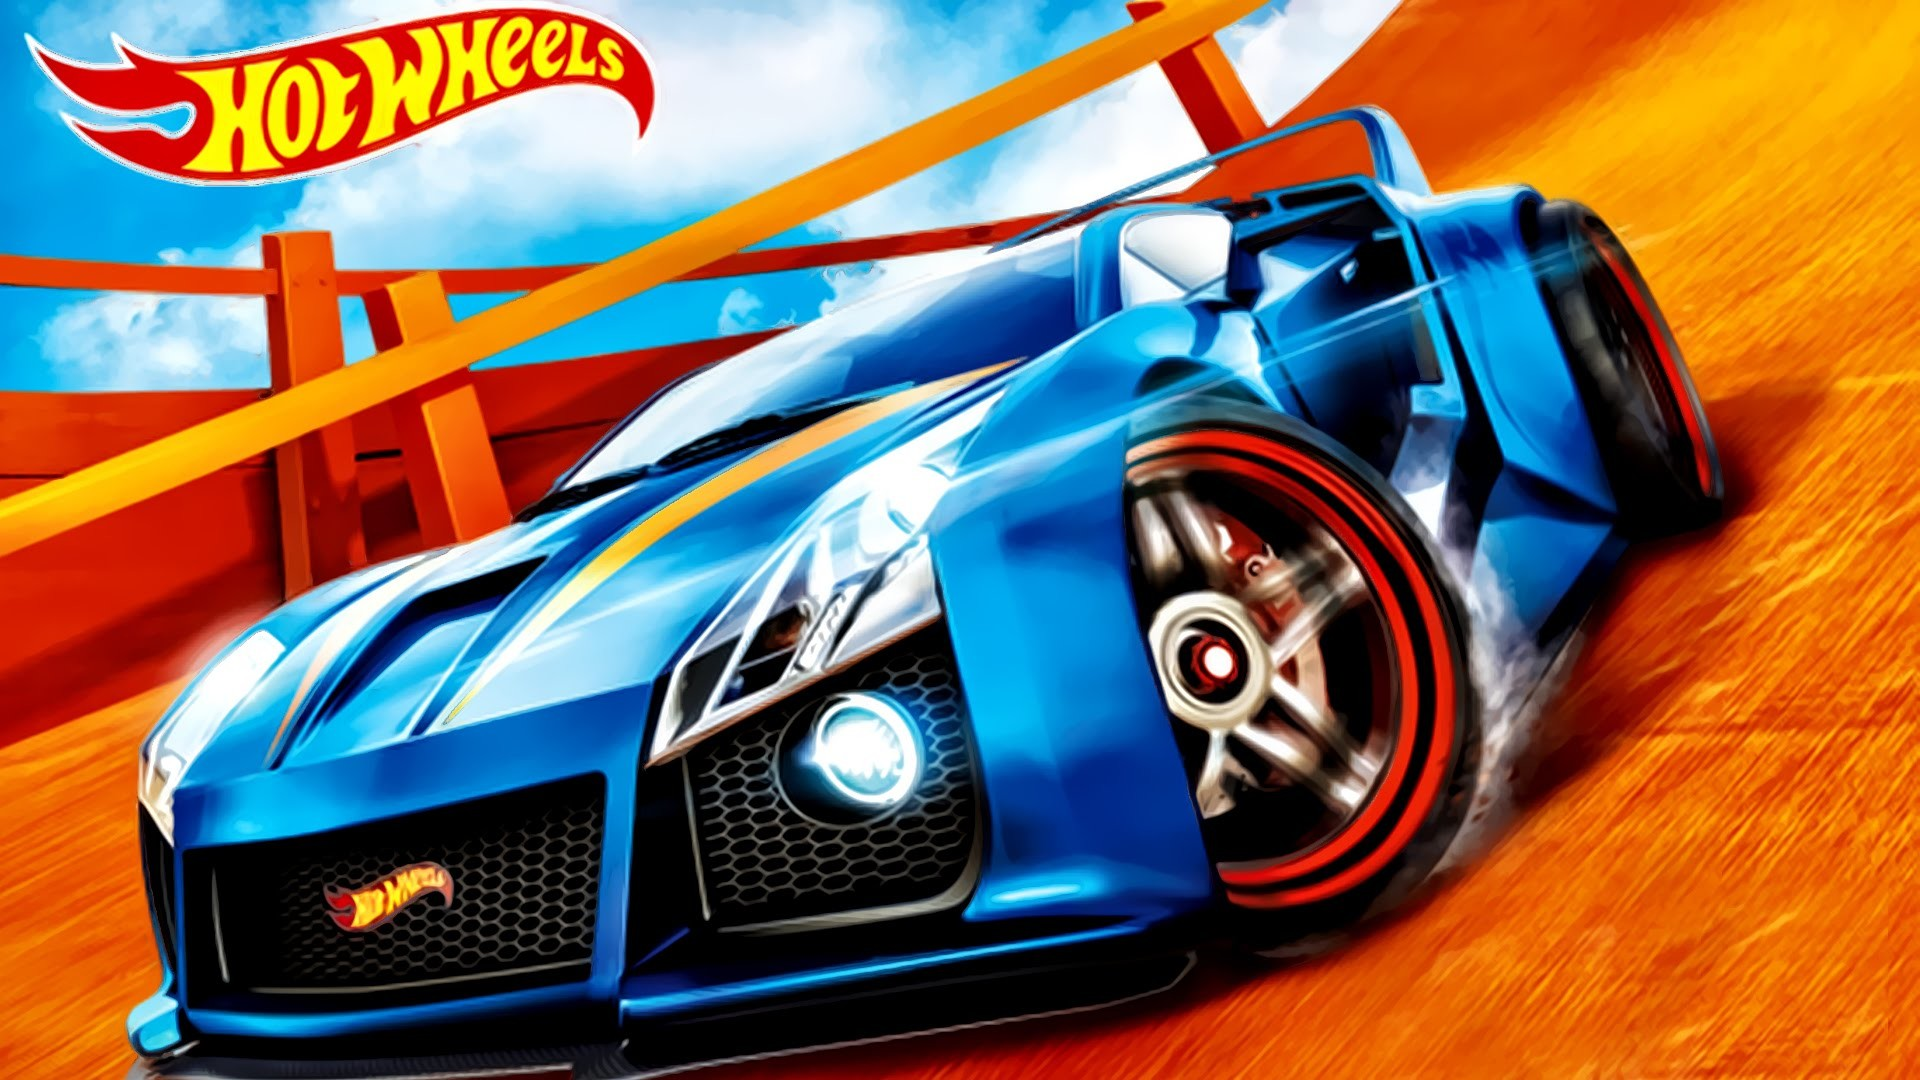 hot wheels logo wallpaper images galleries with a bite. Black Bedroom Furniture Sets. Home Design Ideas